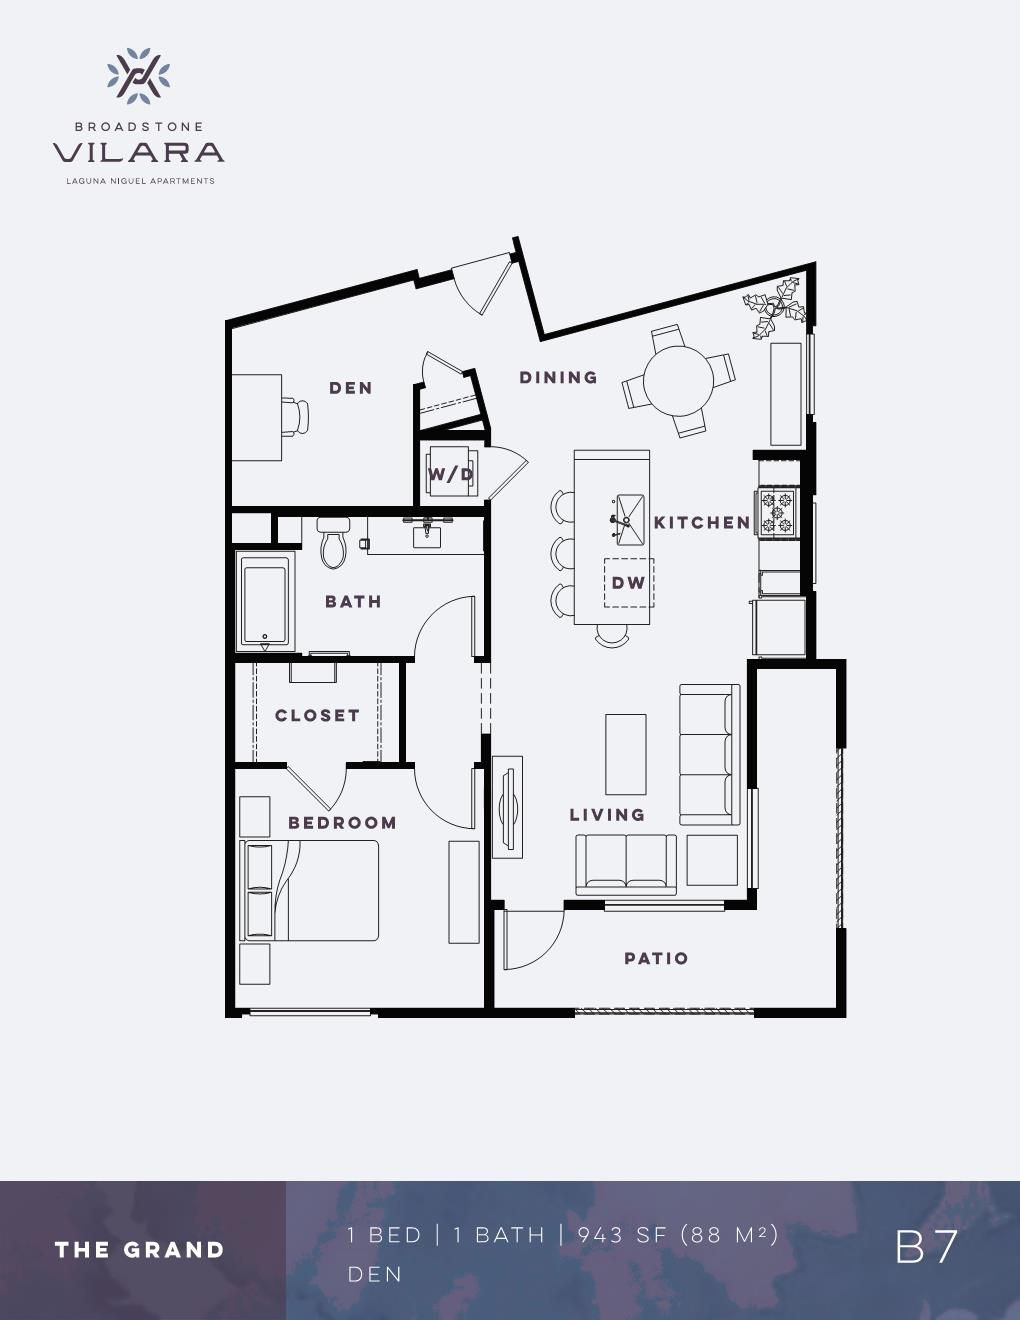 One Bedroom Den Apartment The Grand Broadstone Vilara In 2020 Floor Plans Apartment Floor Plans How To Plan